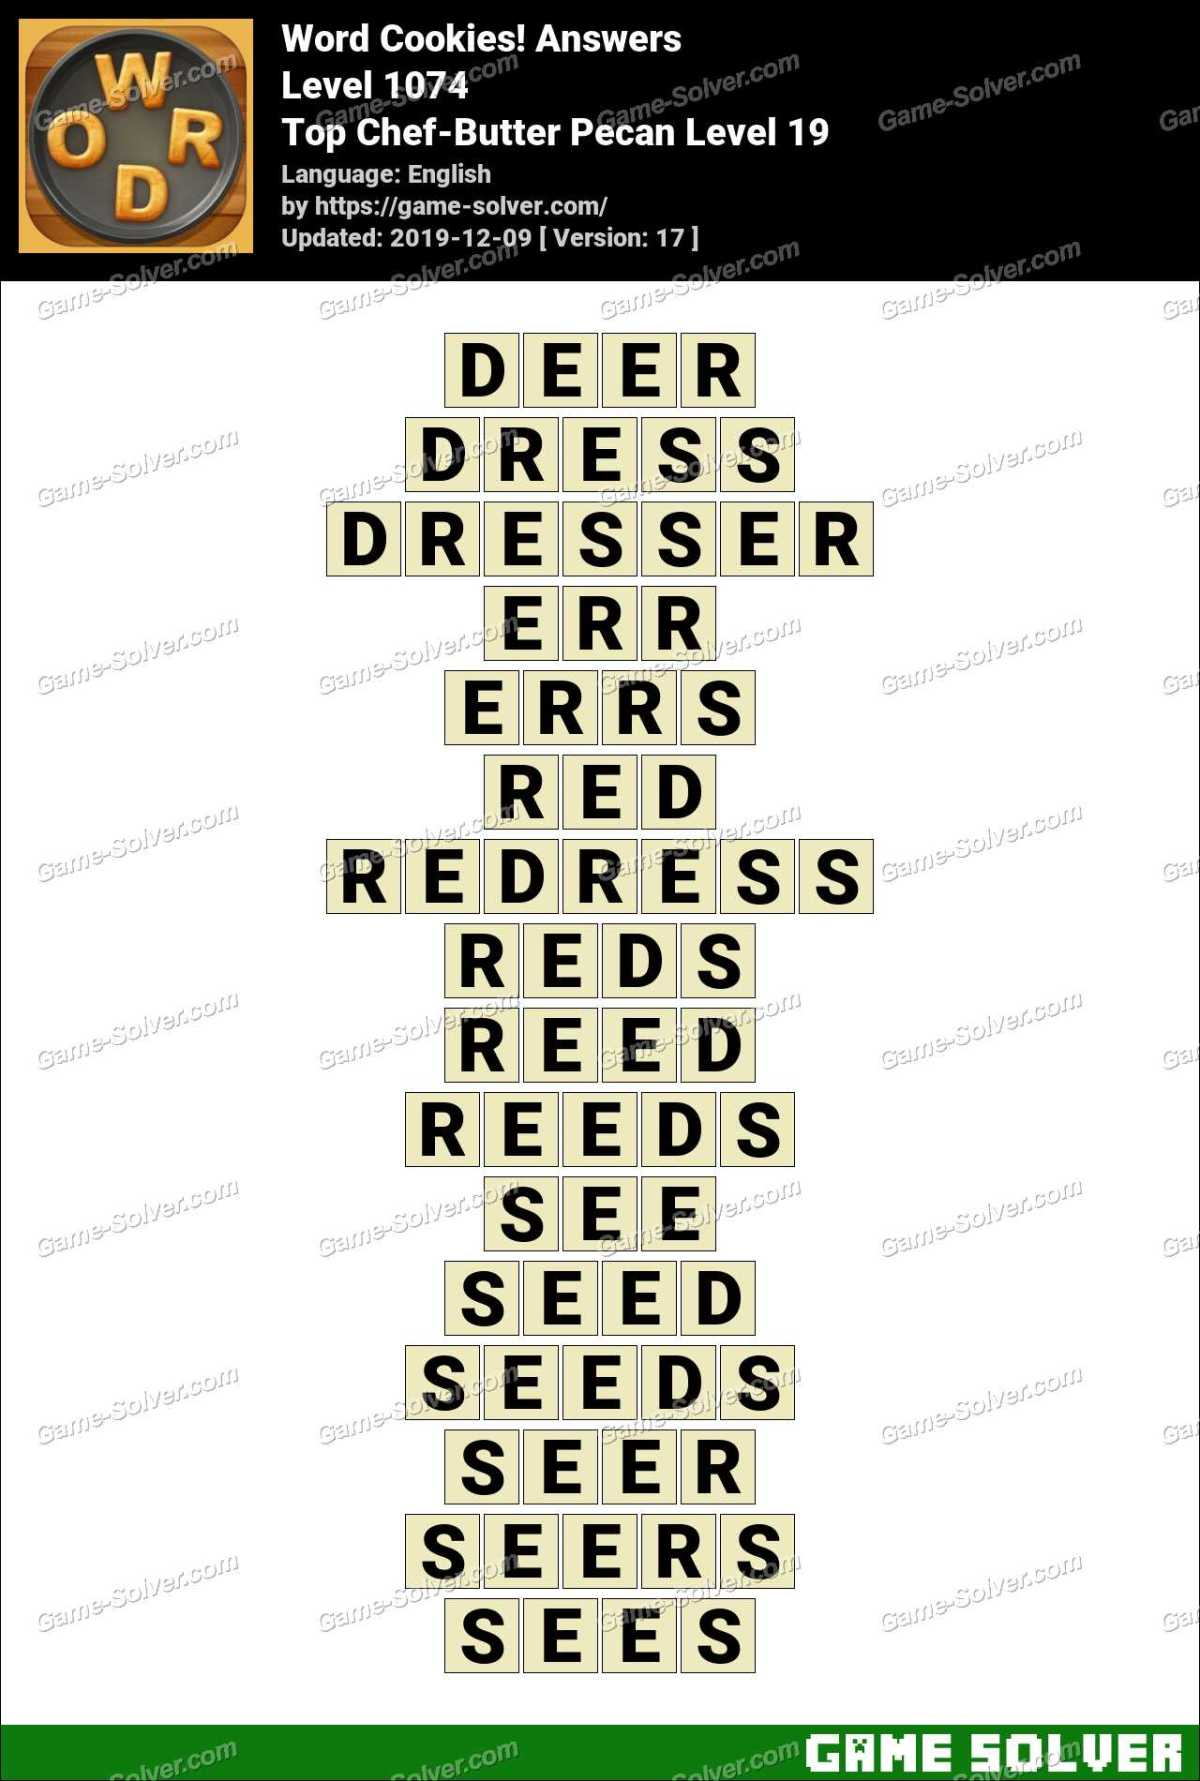 Word Cookies Top Chef-Butter Pecan Level 19 Answers